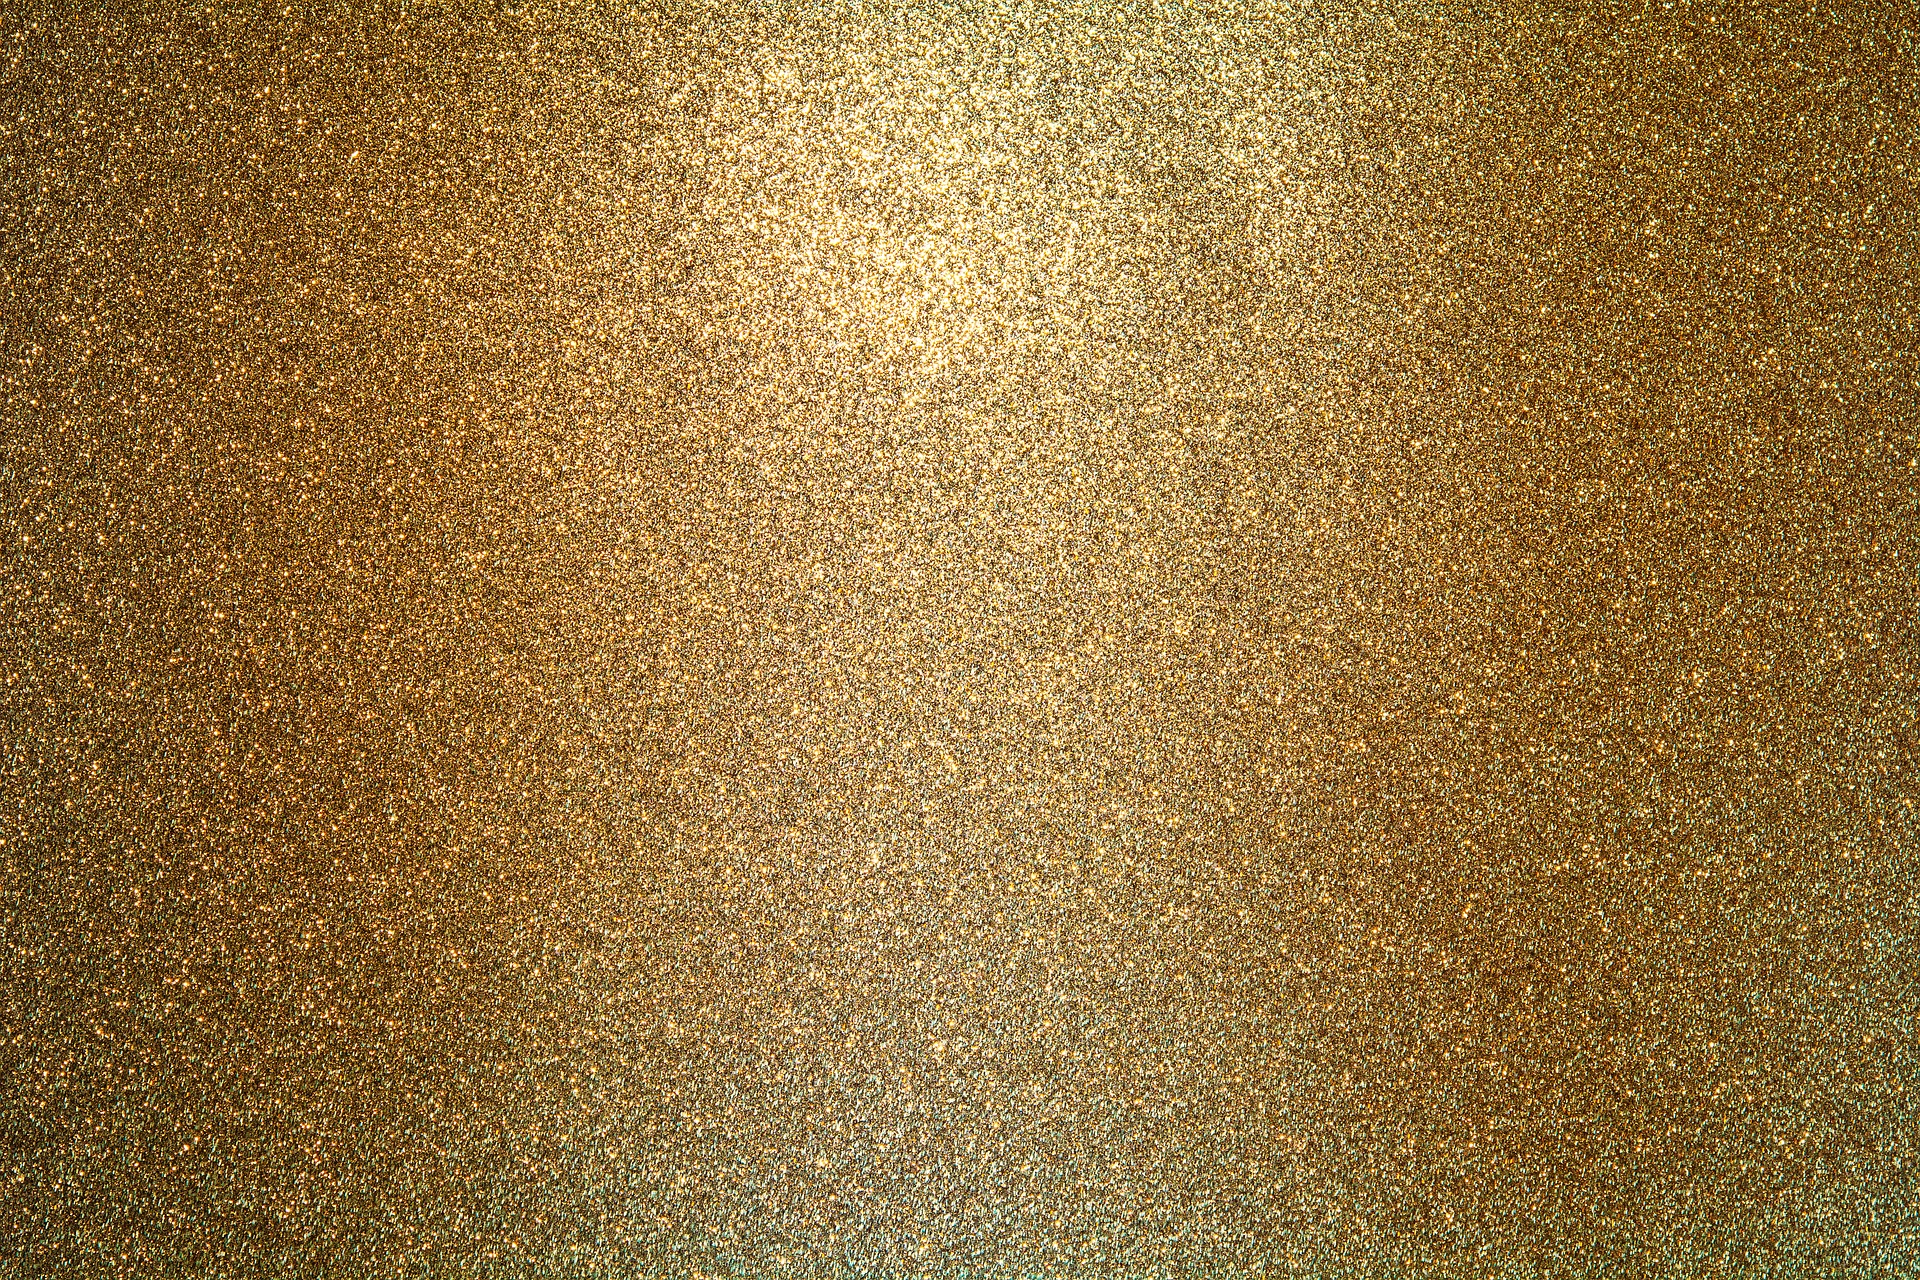 """""""All that is Gold does not Glitter"""" –1 Samuel 16"""